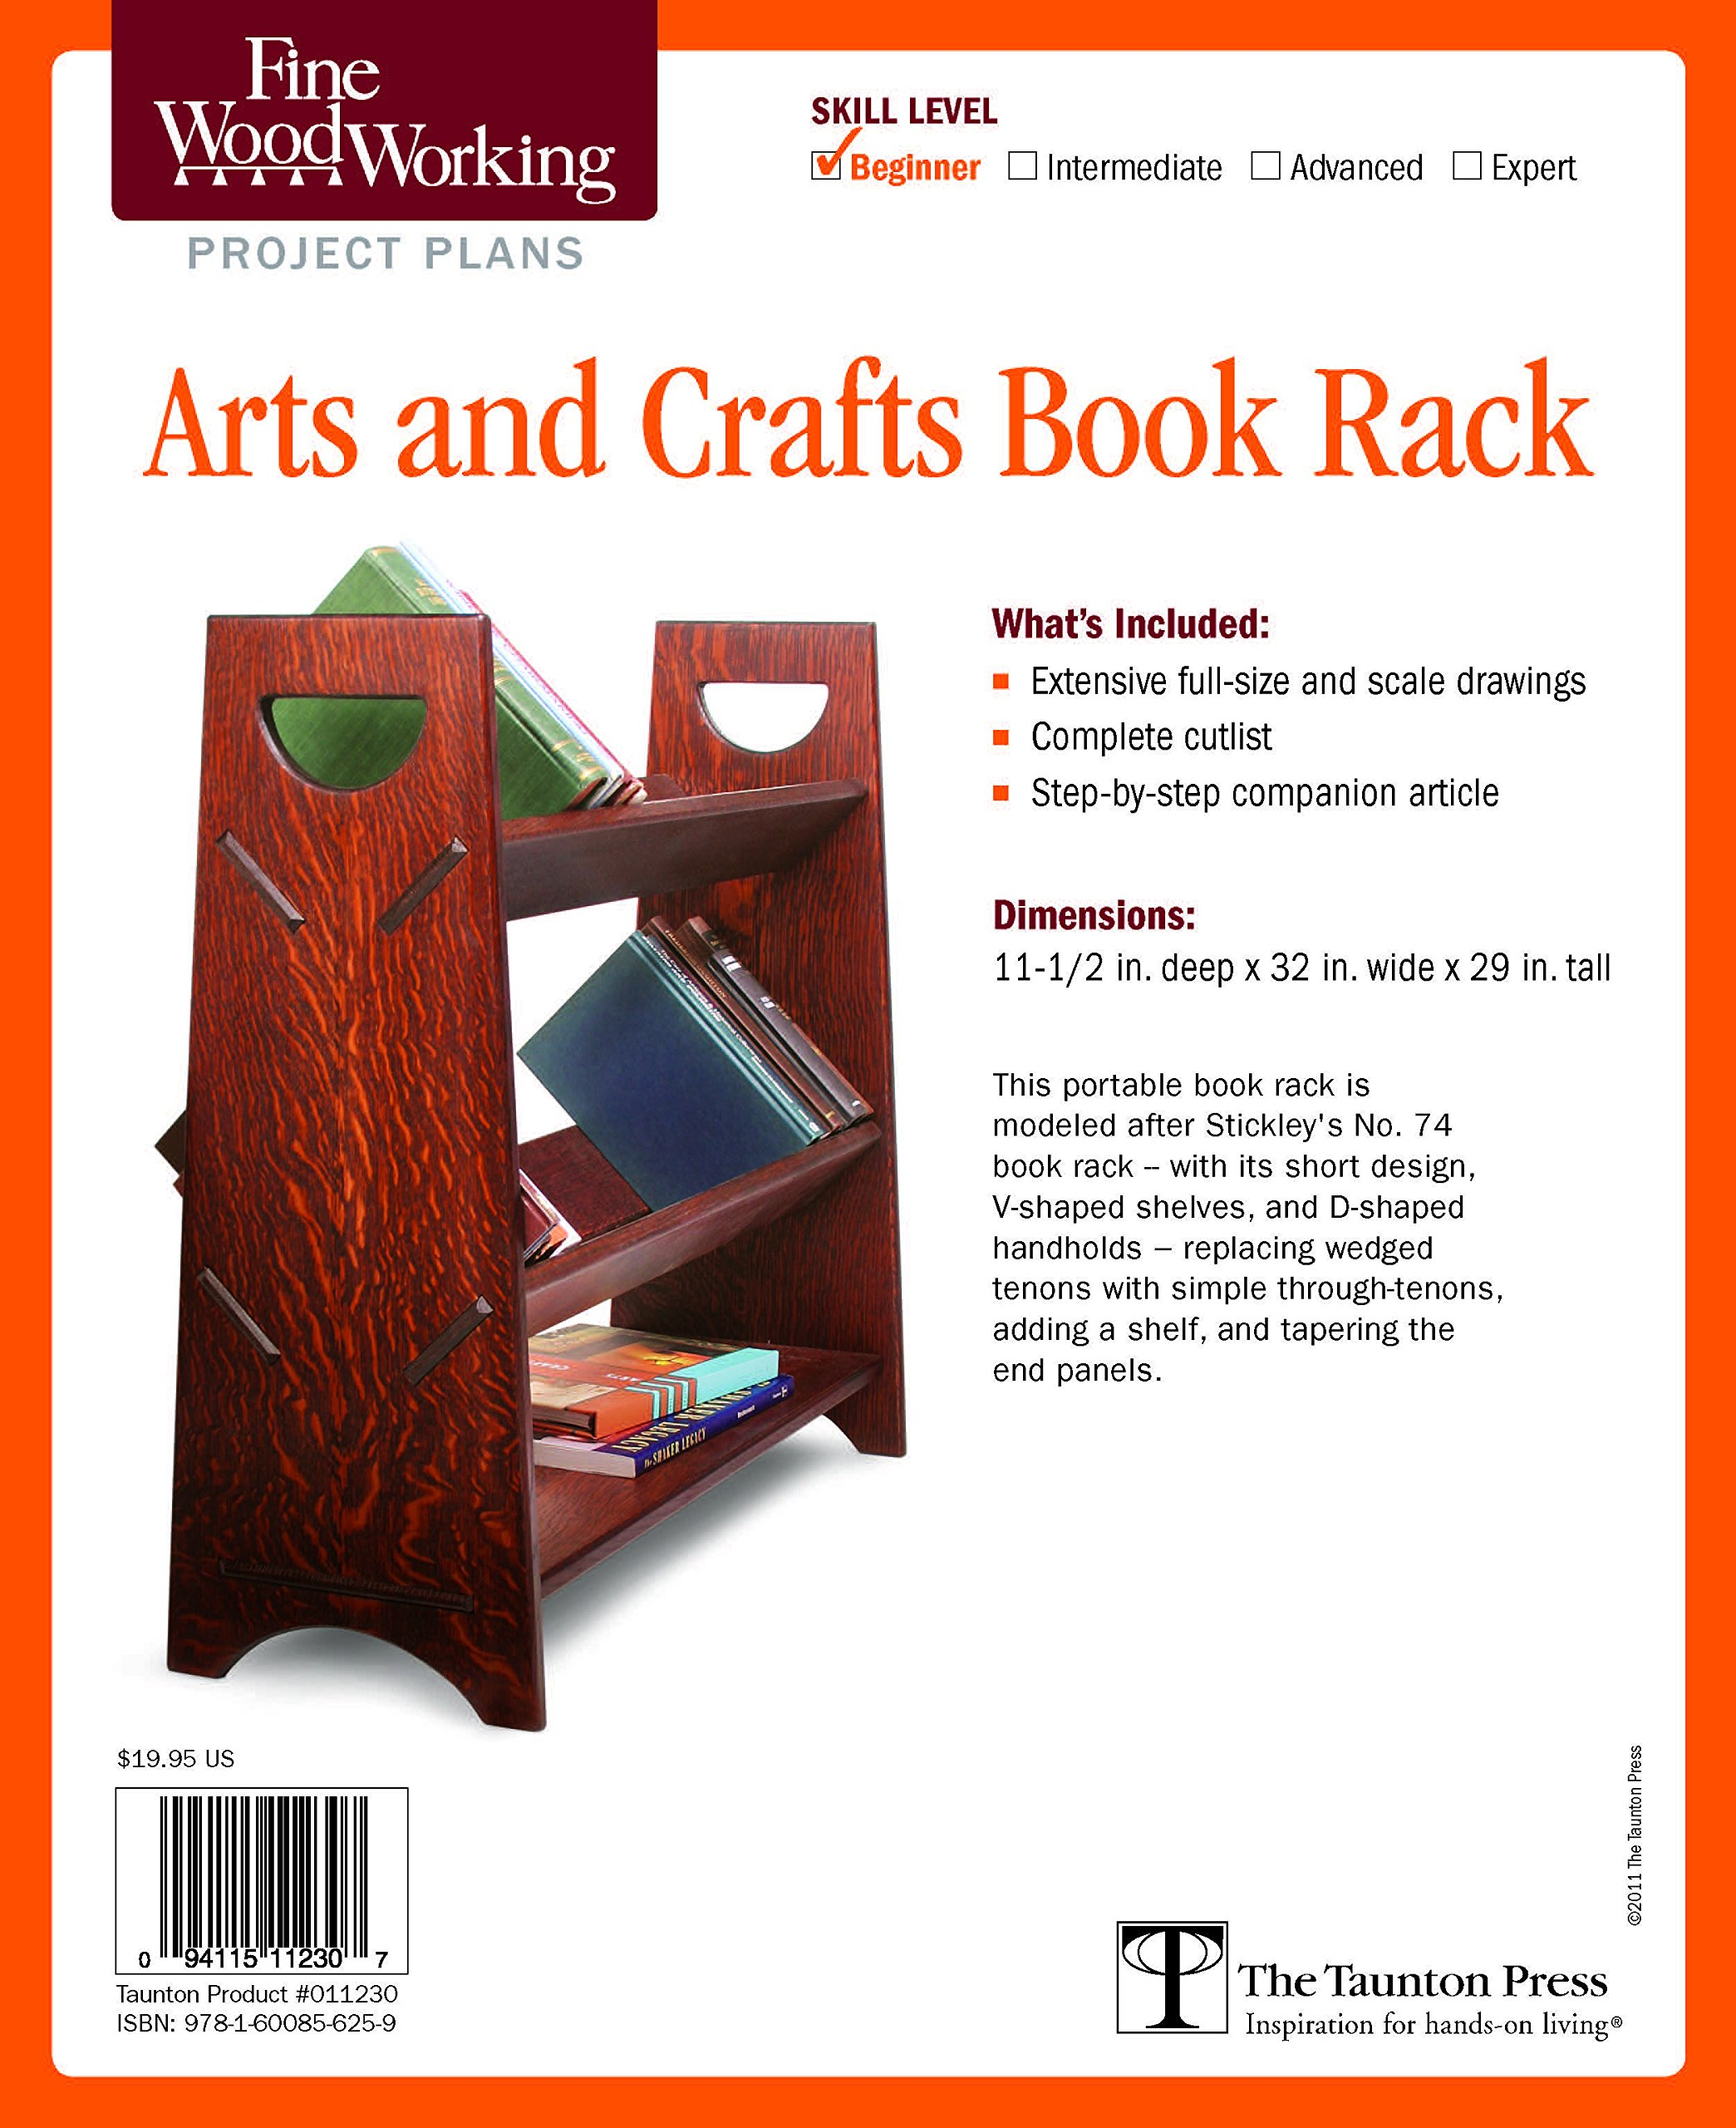 Download Fine Woodworking's Arts and Crafts Book Rack Plan PDF